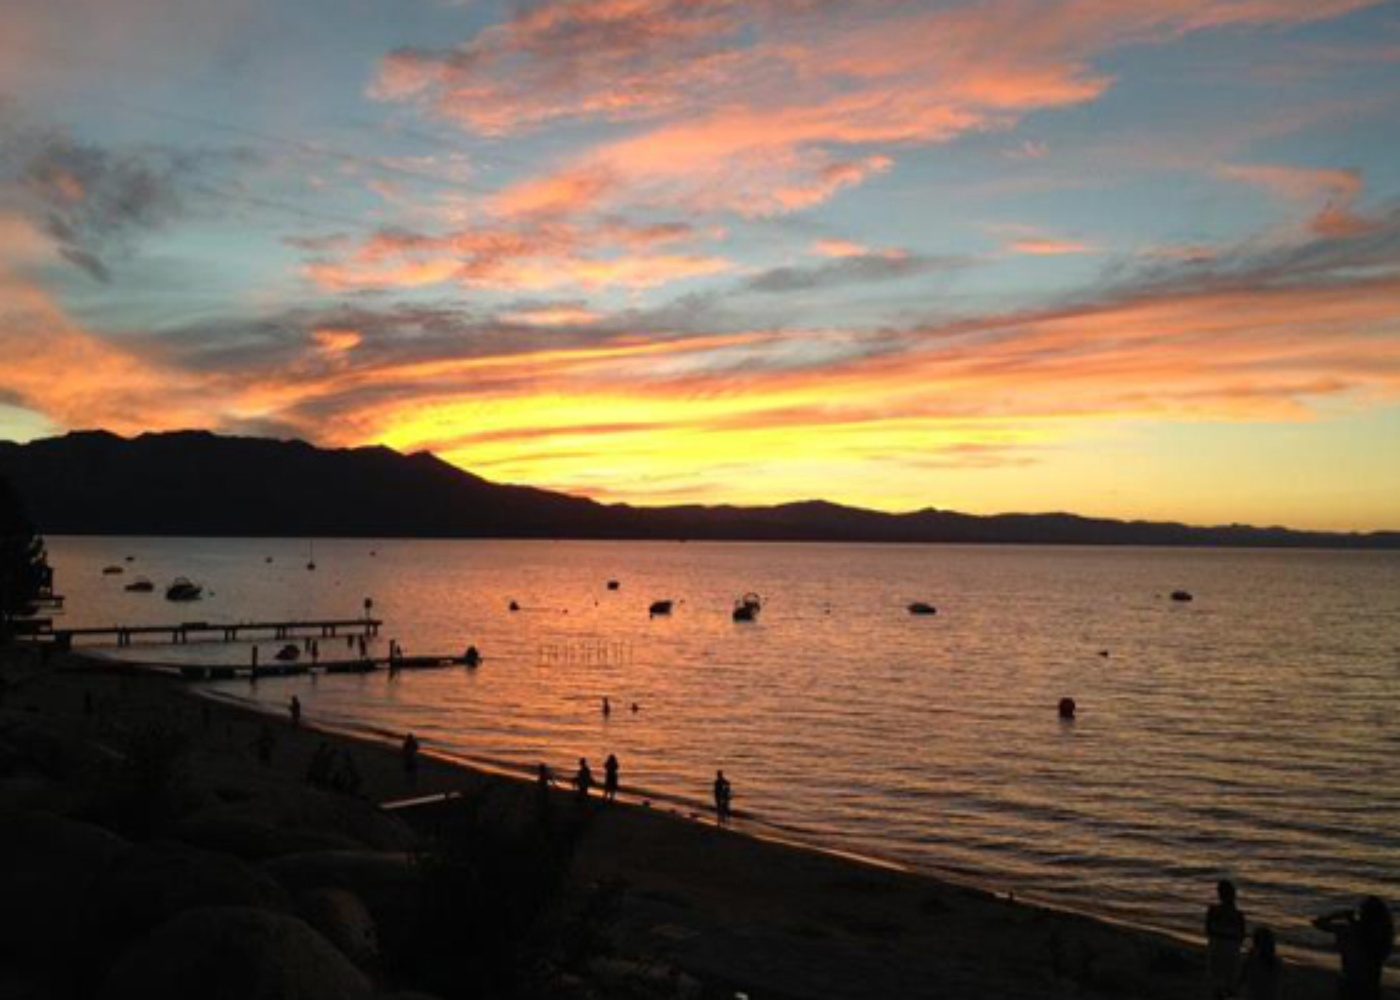 Sunset in Lake Tahoe